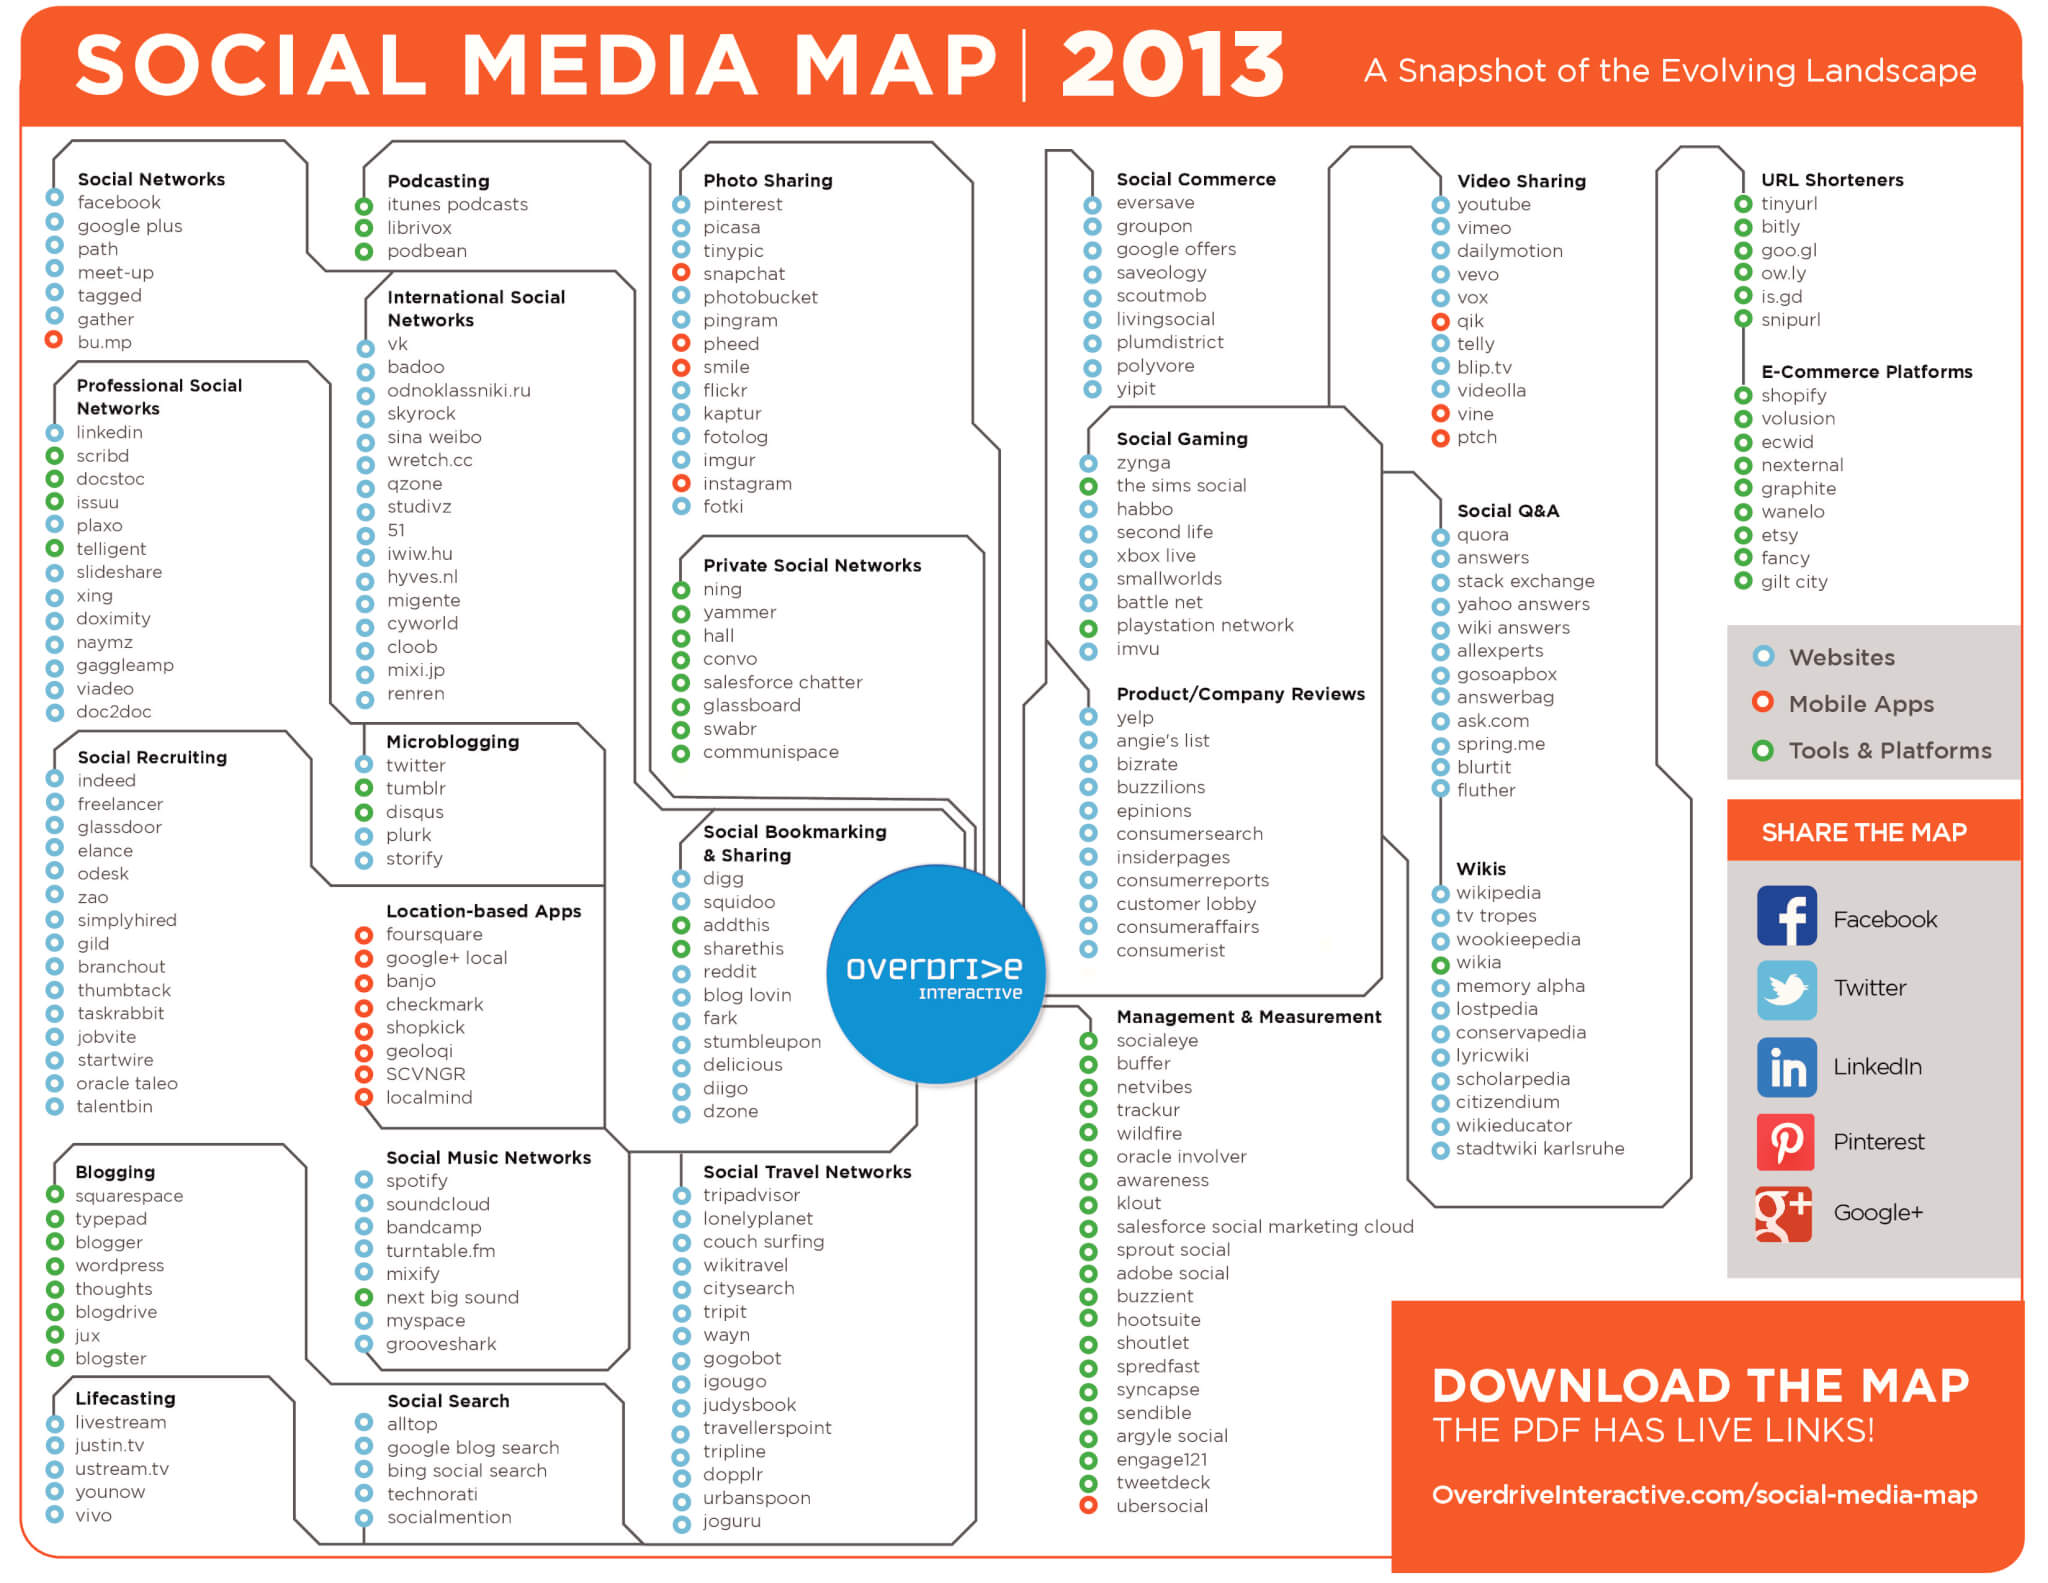 Overdrive Interactive Releases Social Media Map for 2013 - v2 0